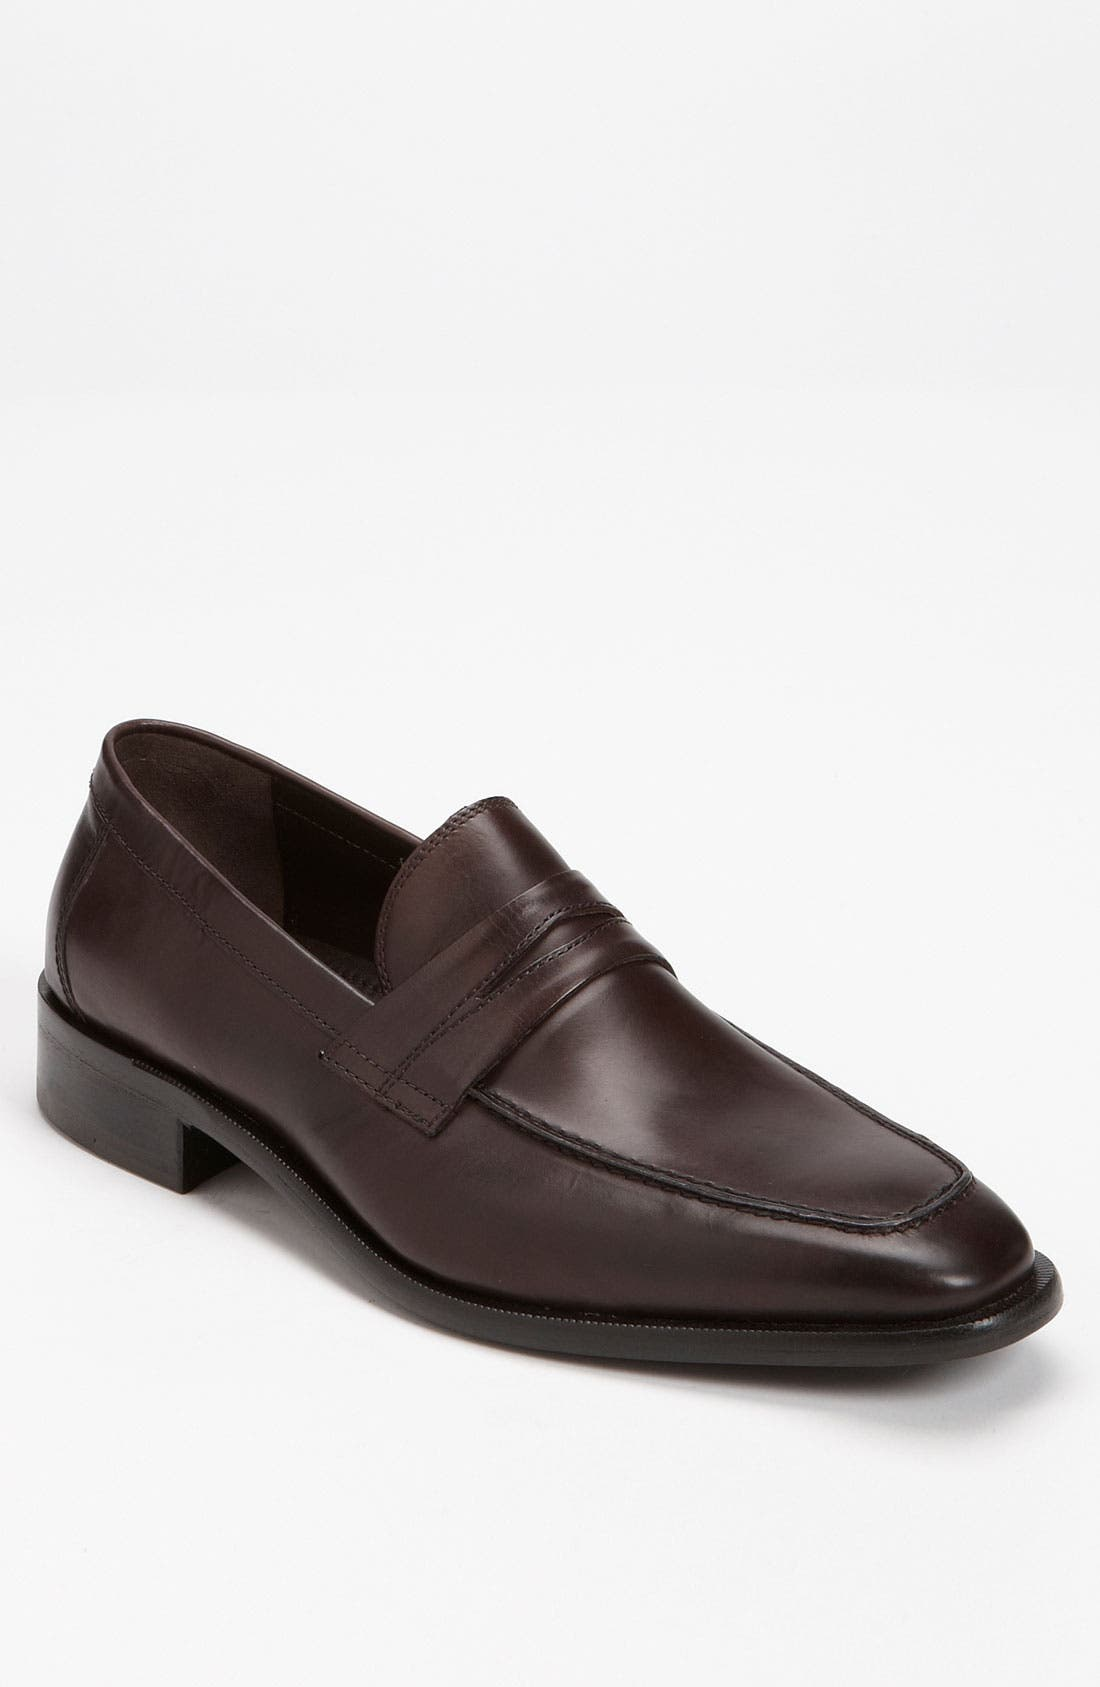 Main Image - Donald J Pliner 'Gair' Loafer